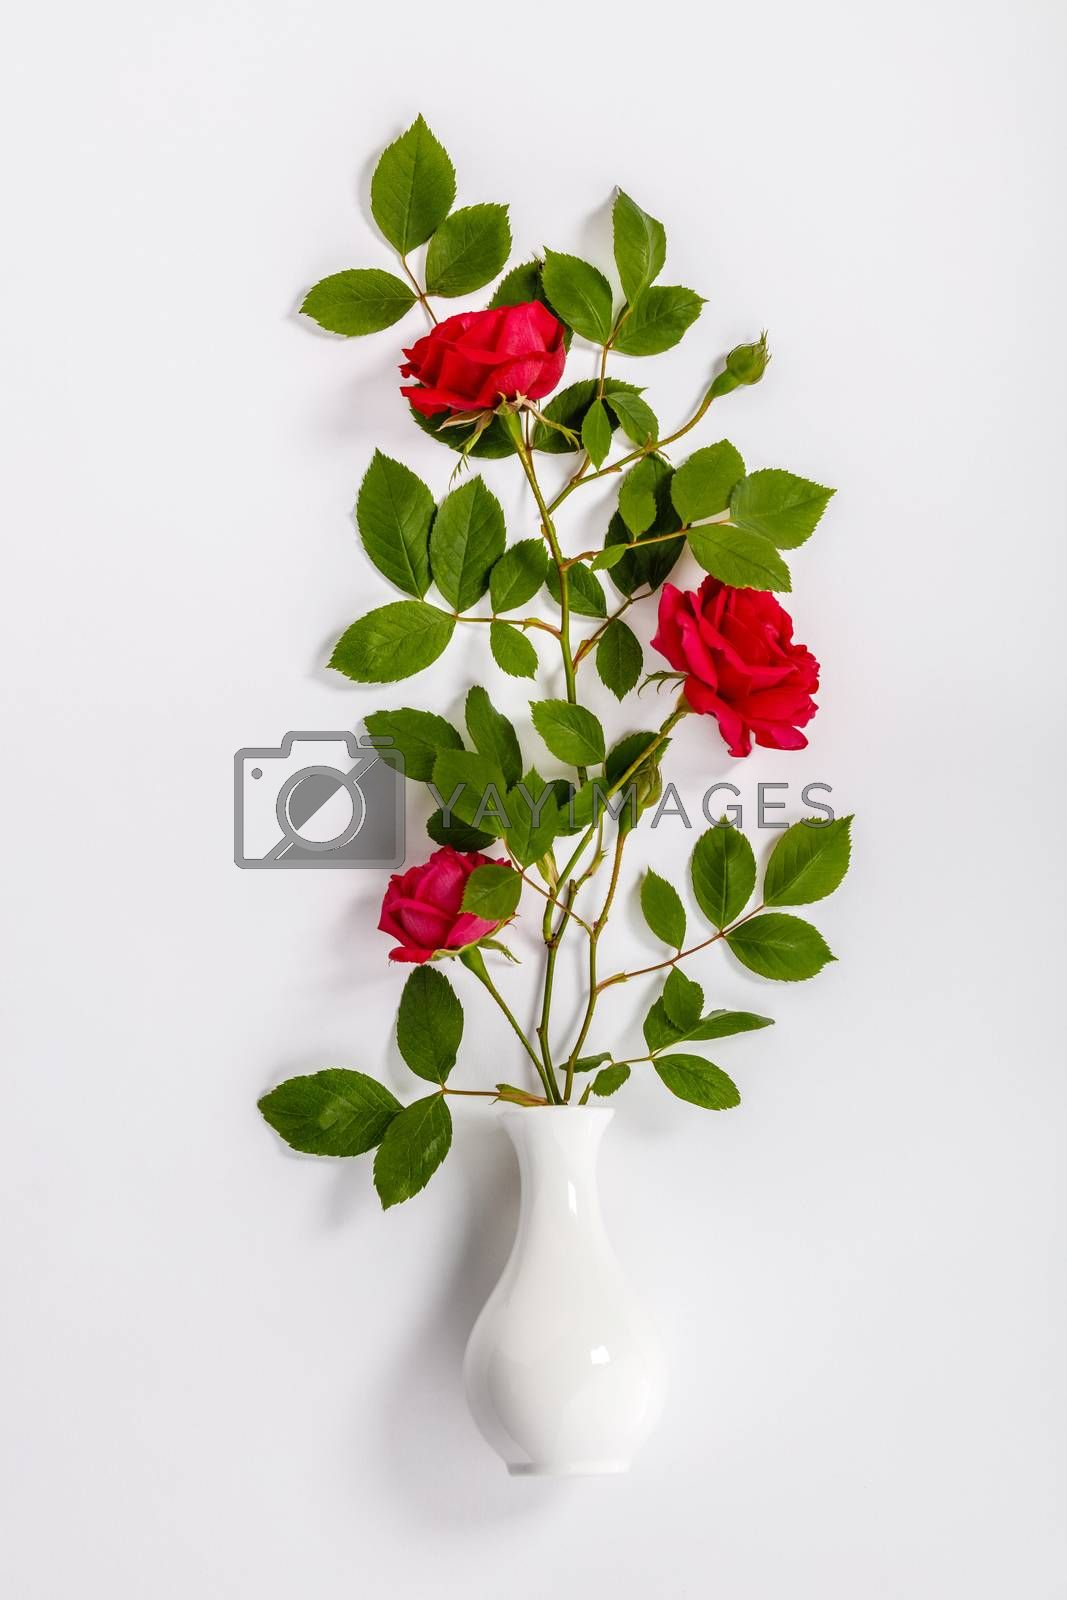 Flowers composition. Red roses and white vase on white background, flat lay